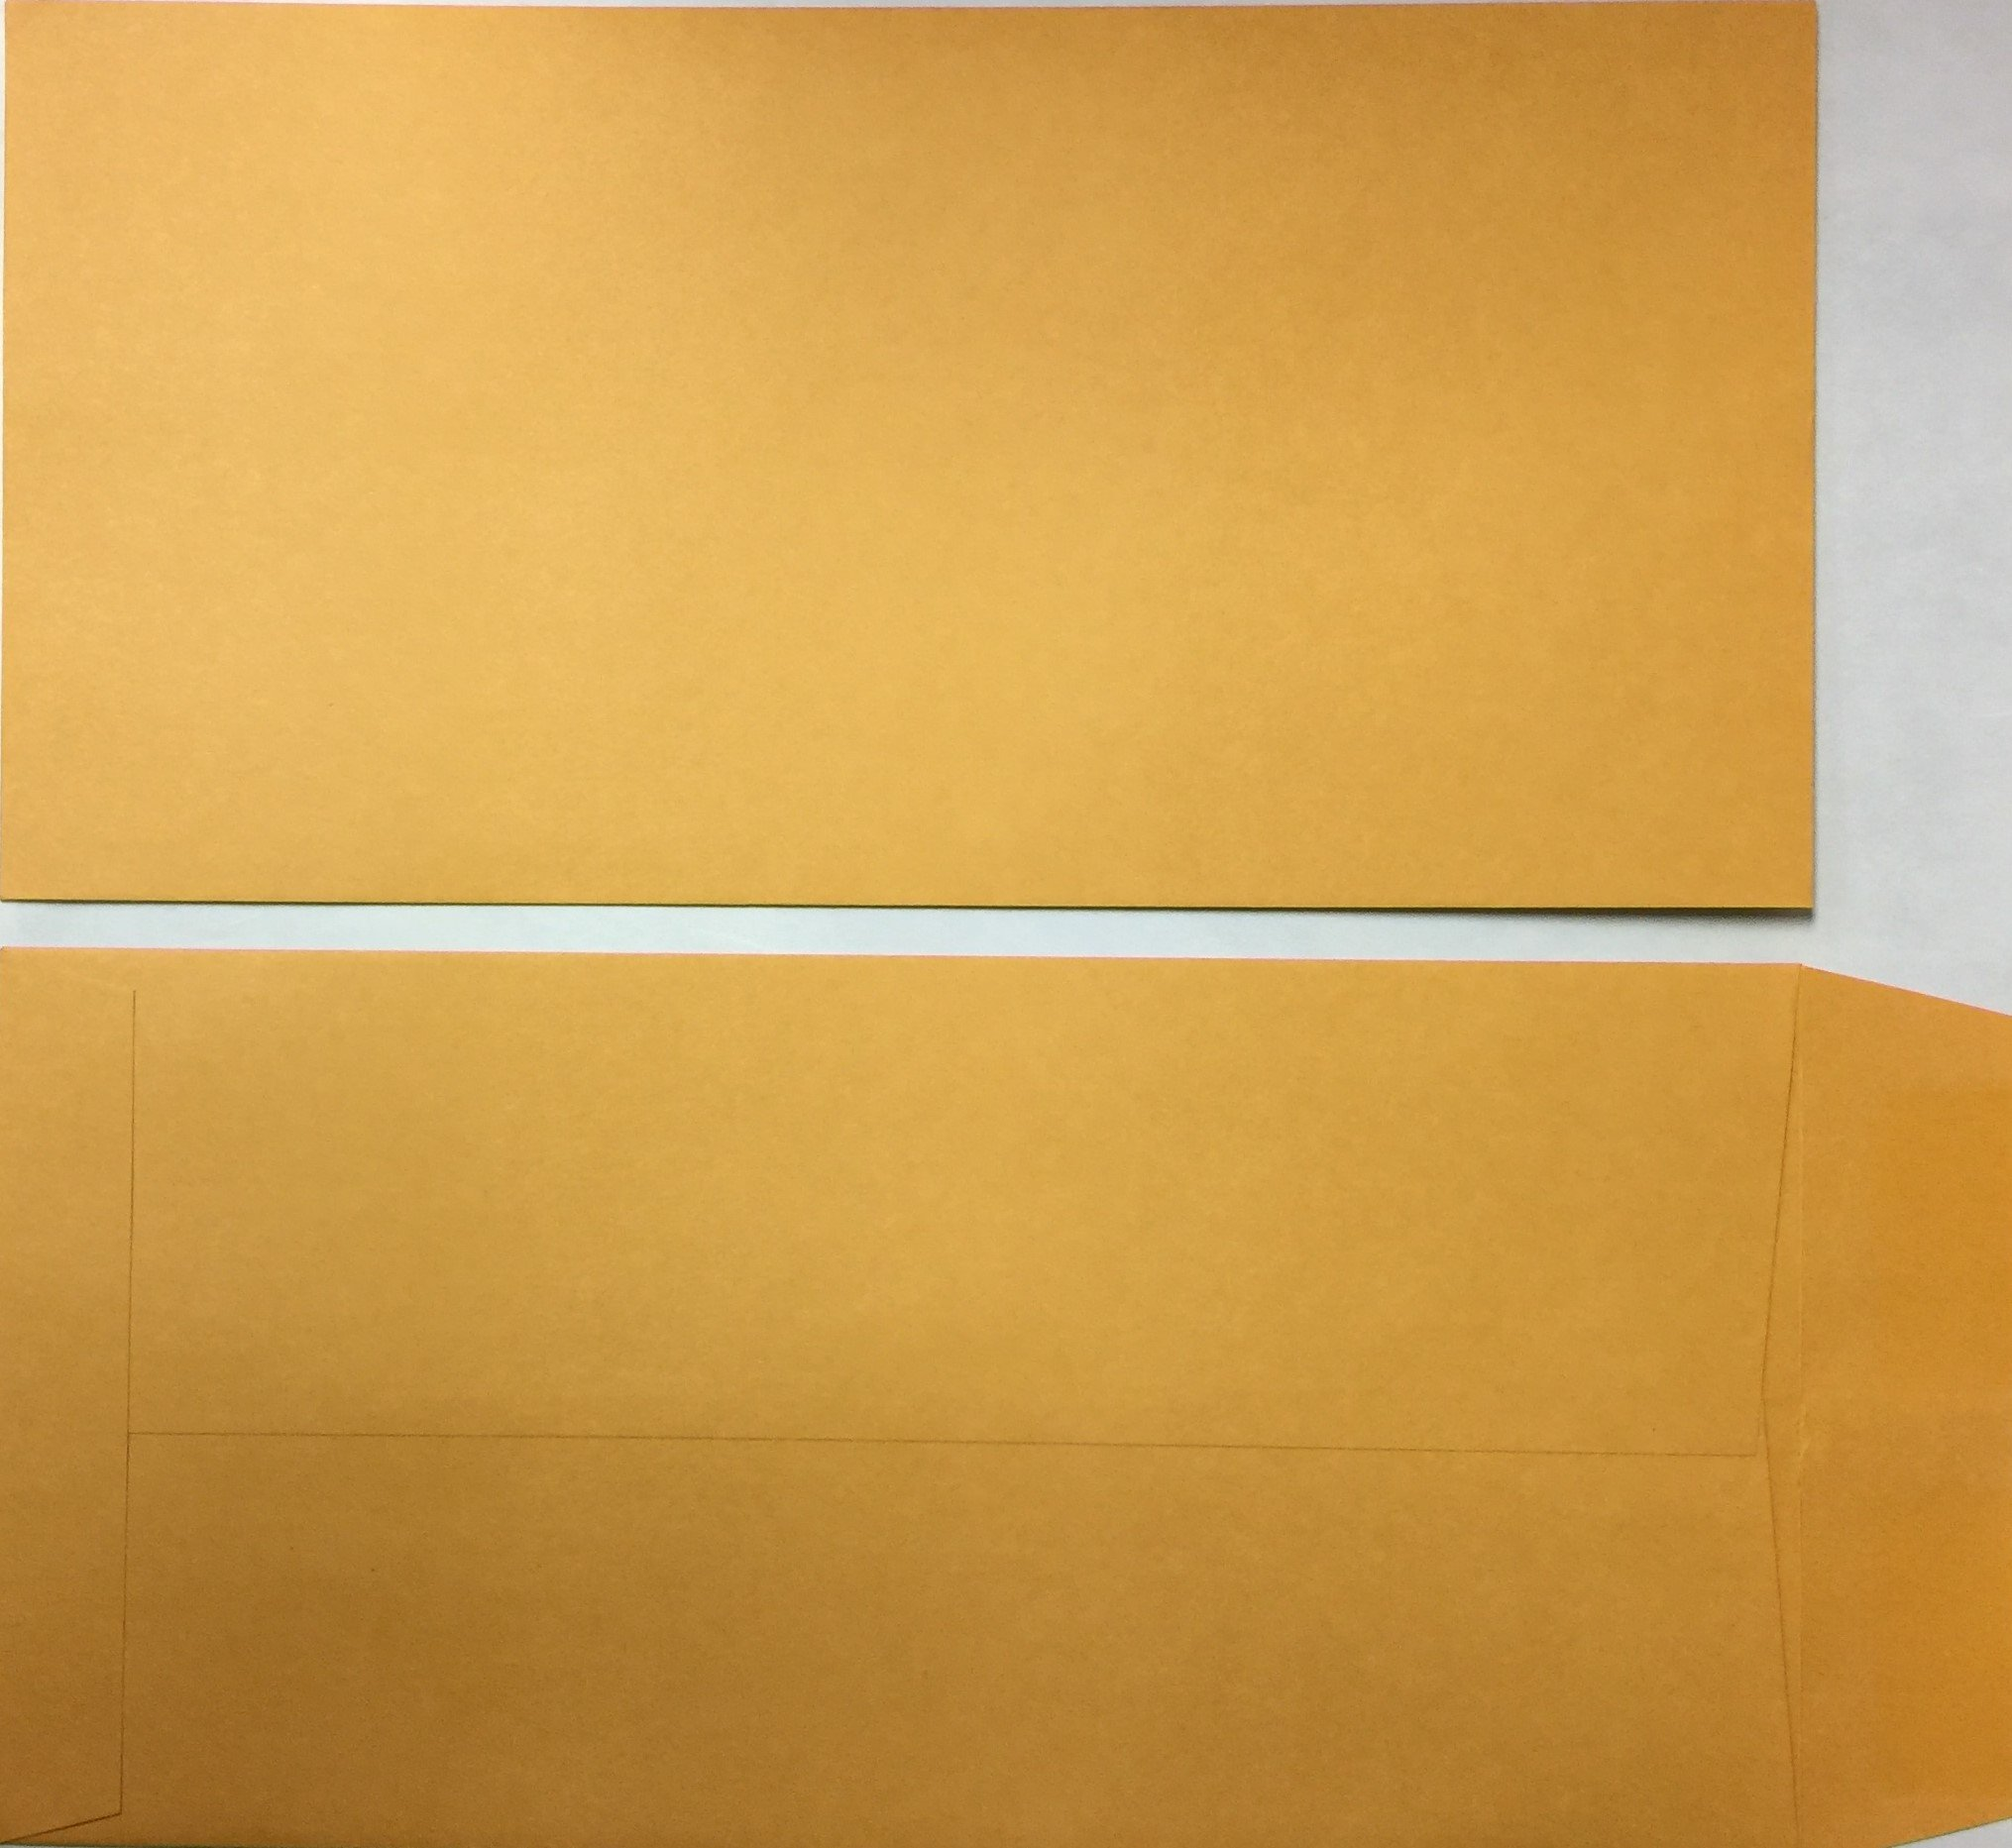 License Plate Envelopes (Blank) 500 Quantity LPEV Moist & Seal (P2) by A Plus